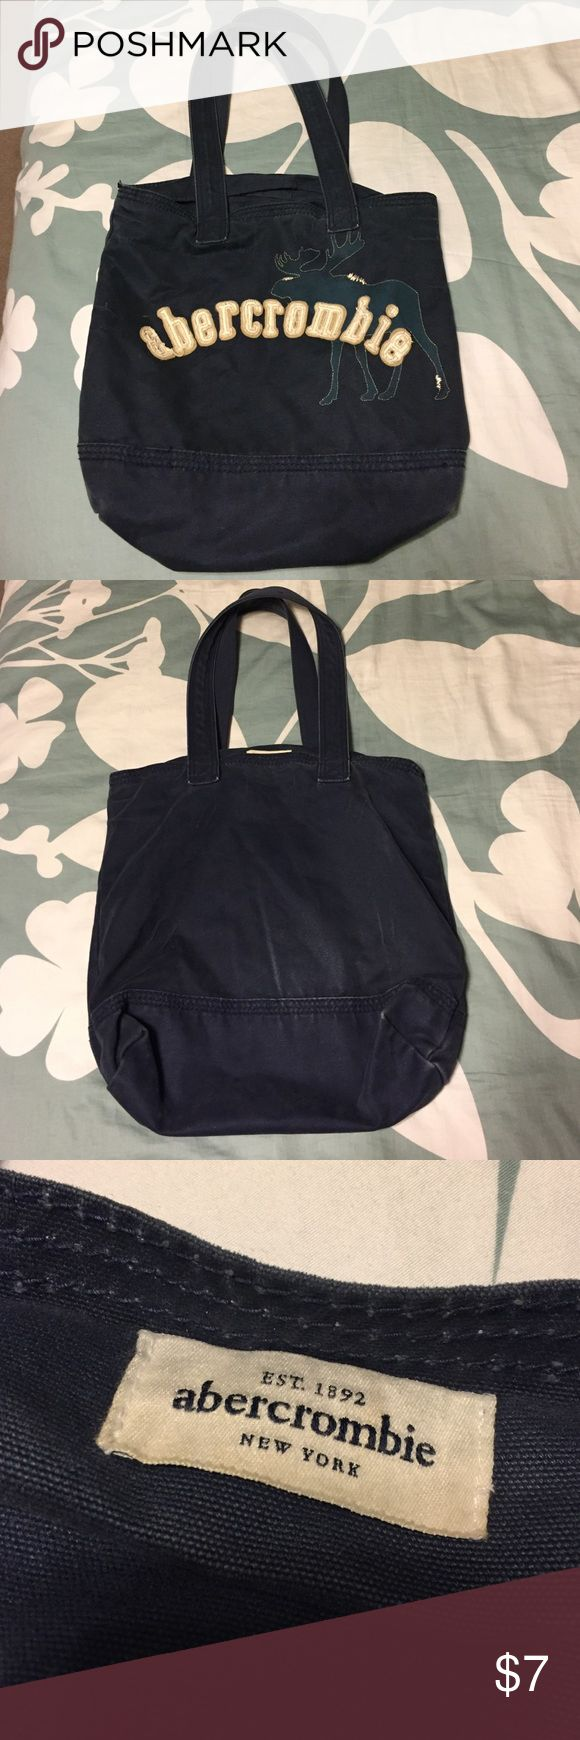 Abercrombie tote bag Navy blue Abercrombie tote bag. In good condition for how often I used it. Abercrombie & Fitch Bags Totes